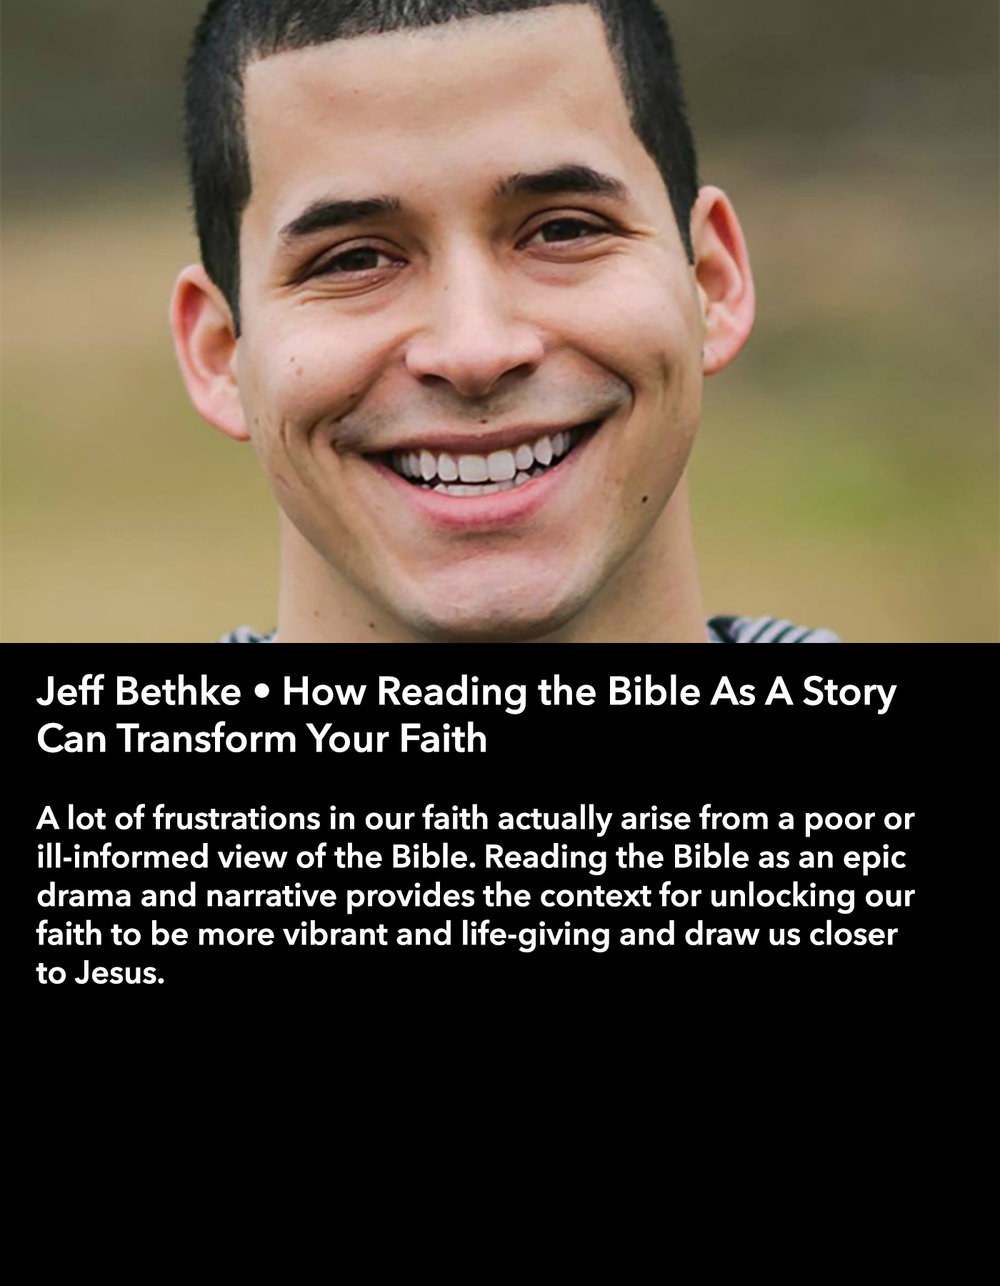 Jeff Bethke • How Reading the Bible As A Story Can Transform Your Faith • Friday Morning, March 17 • 10:30 – 11:45 am